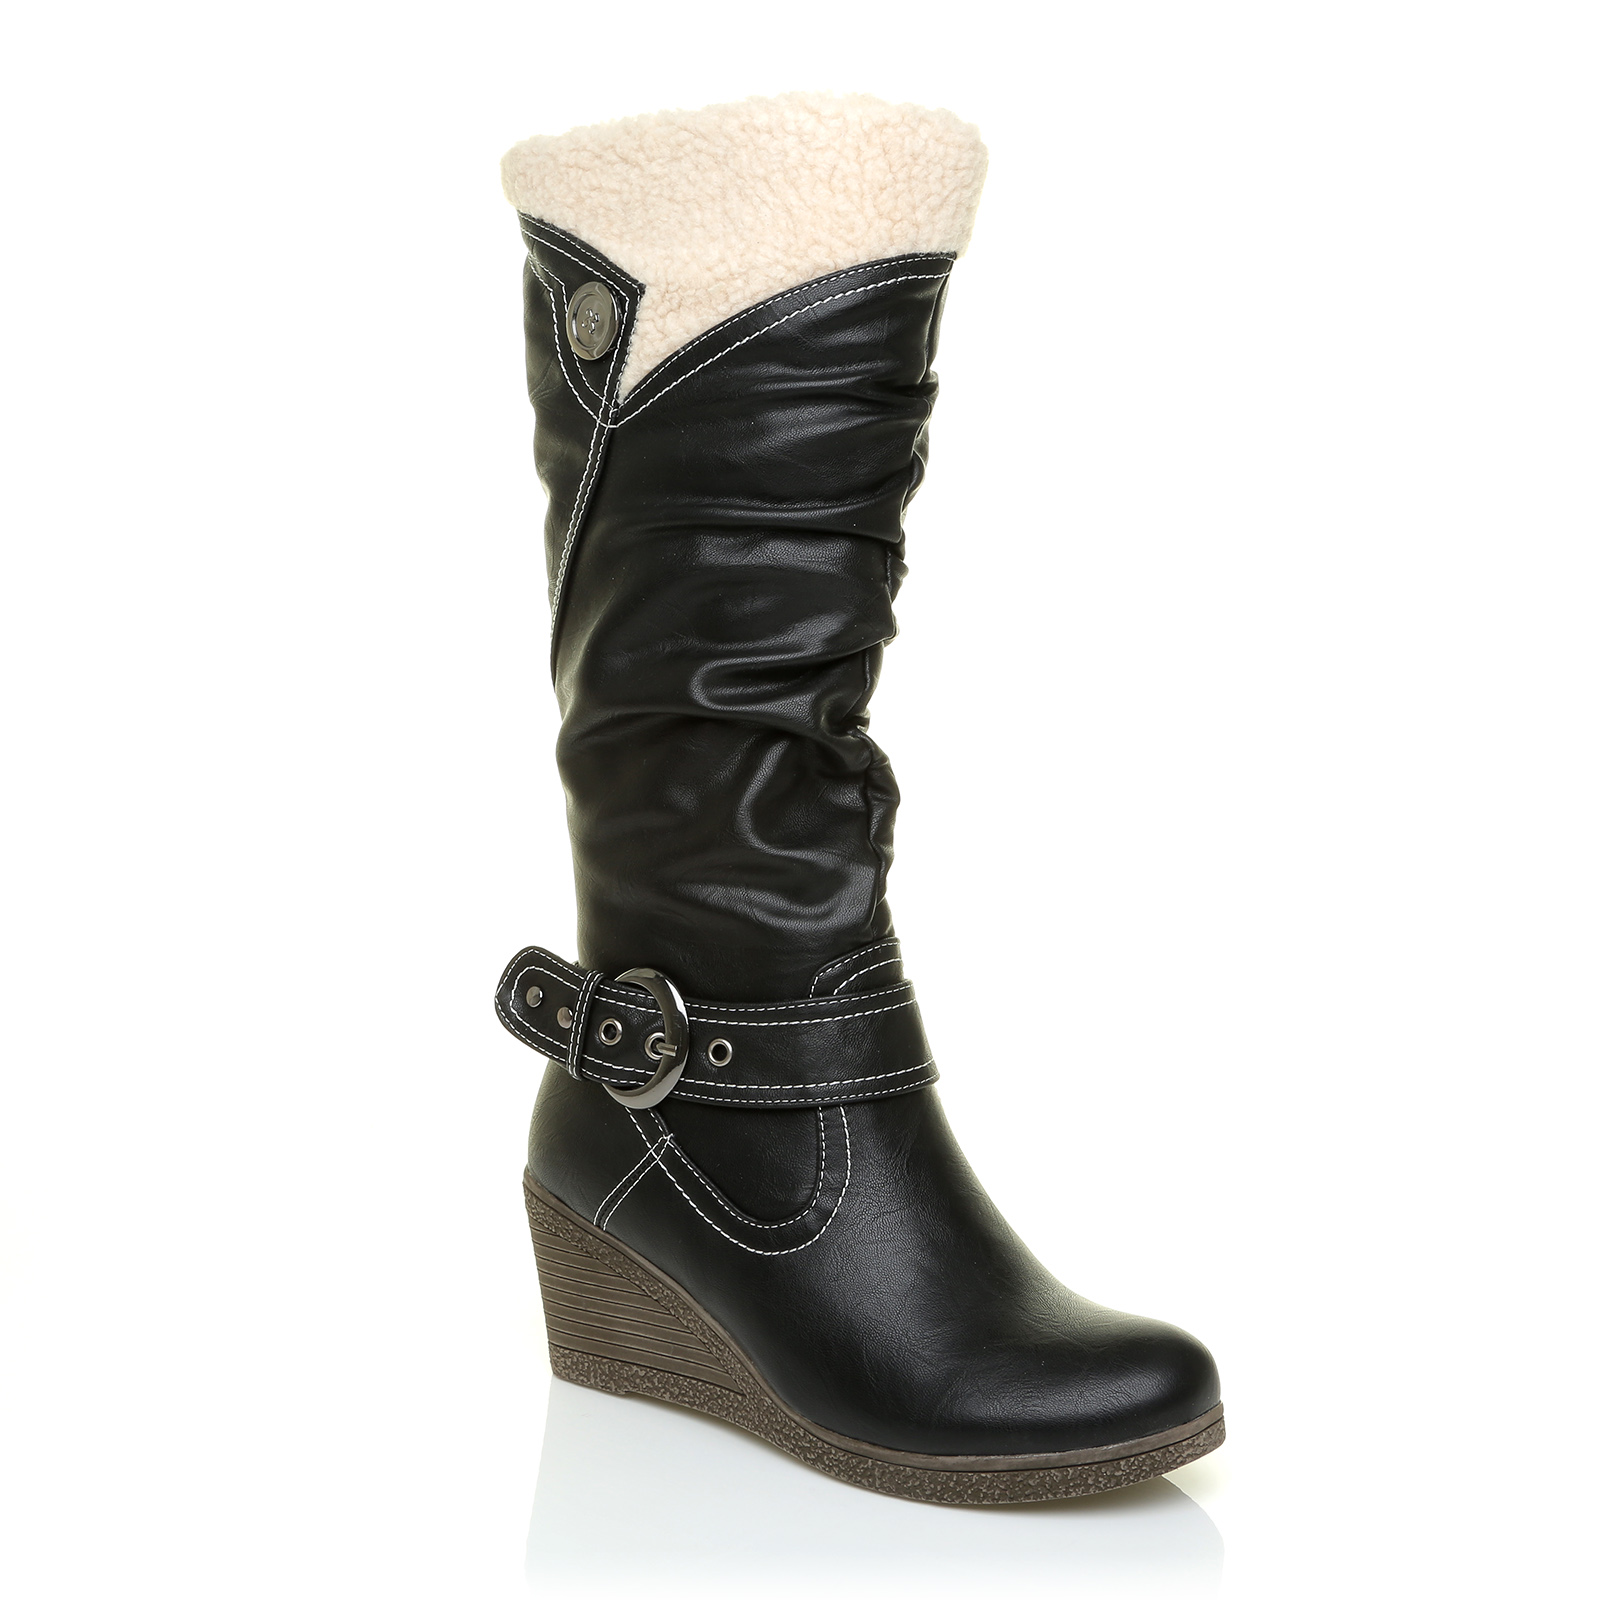 Innovative Womens Riding Boots For Perfect Equestrian Skills - Cottageartcreations.com